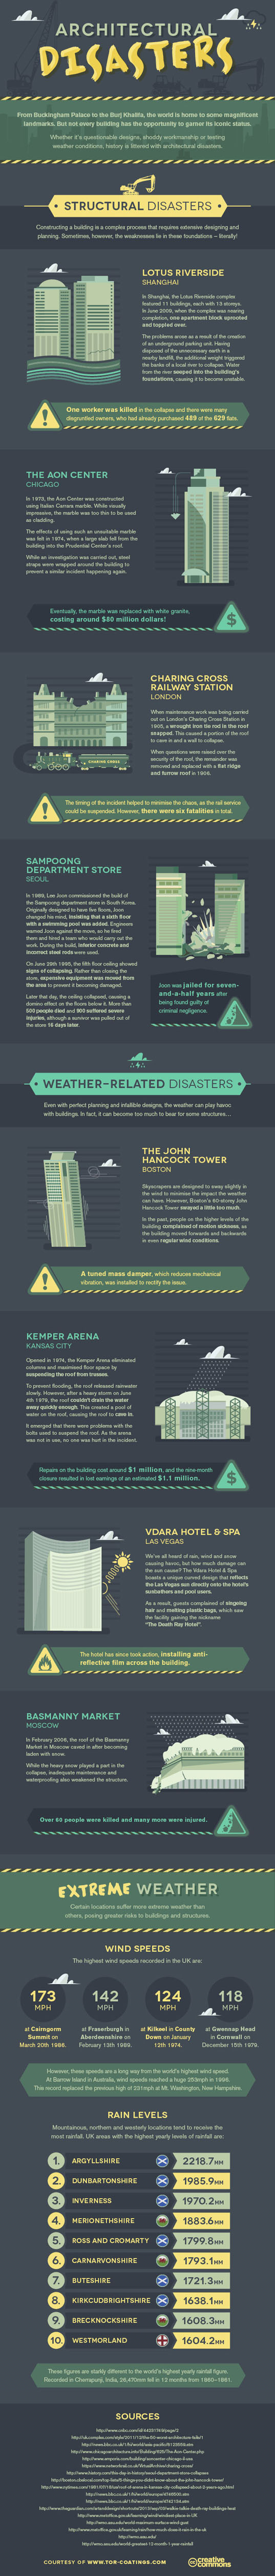 Infographic, architectural disasters, architectural disaster, building disaster, infographic